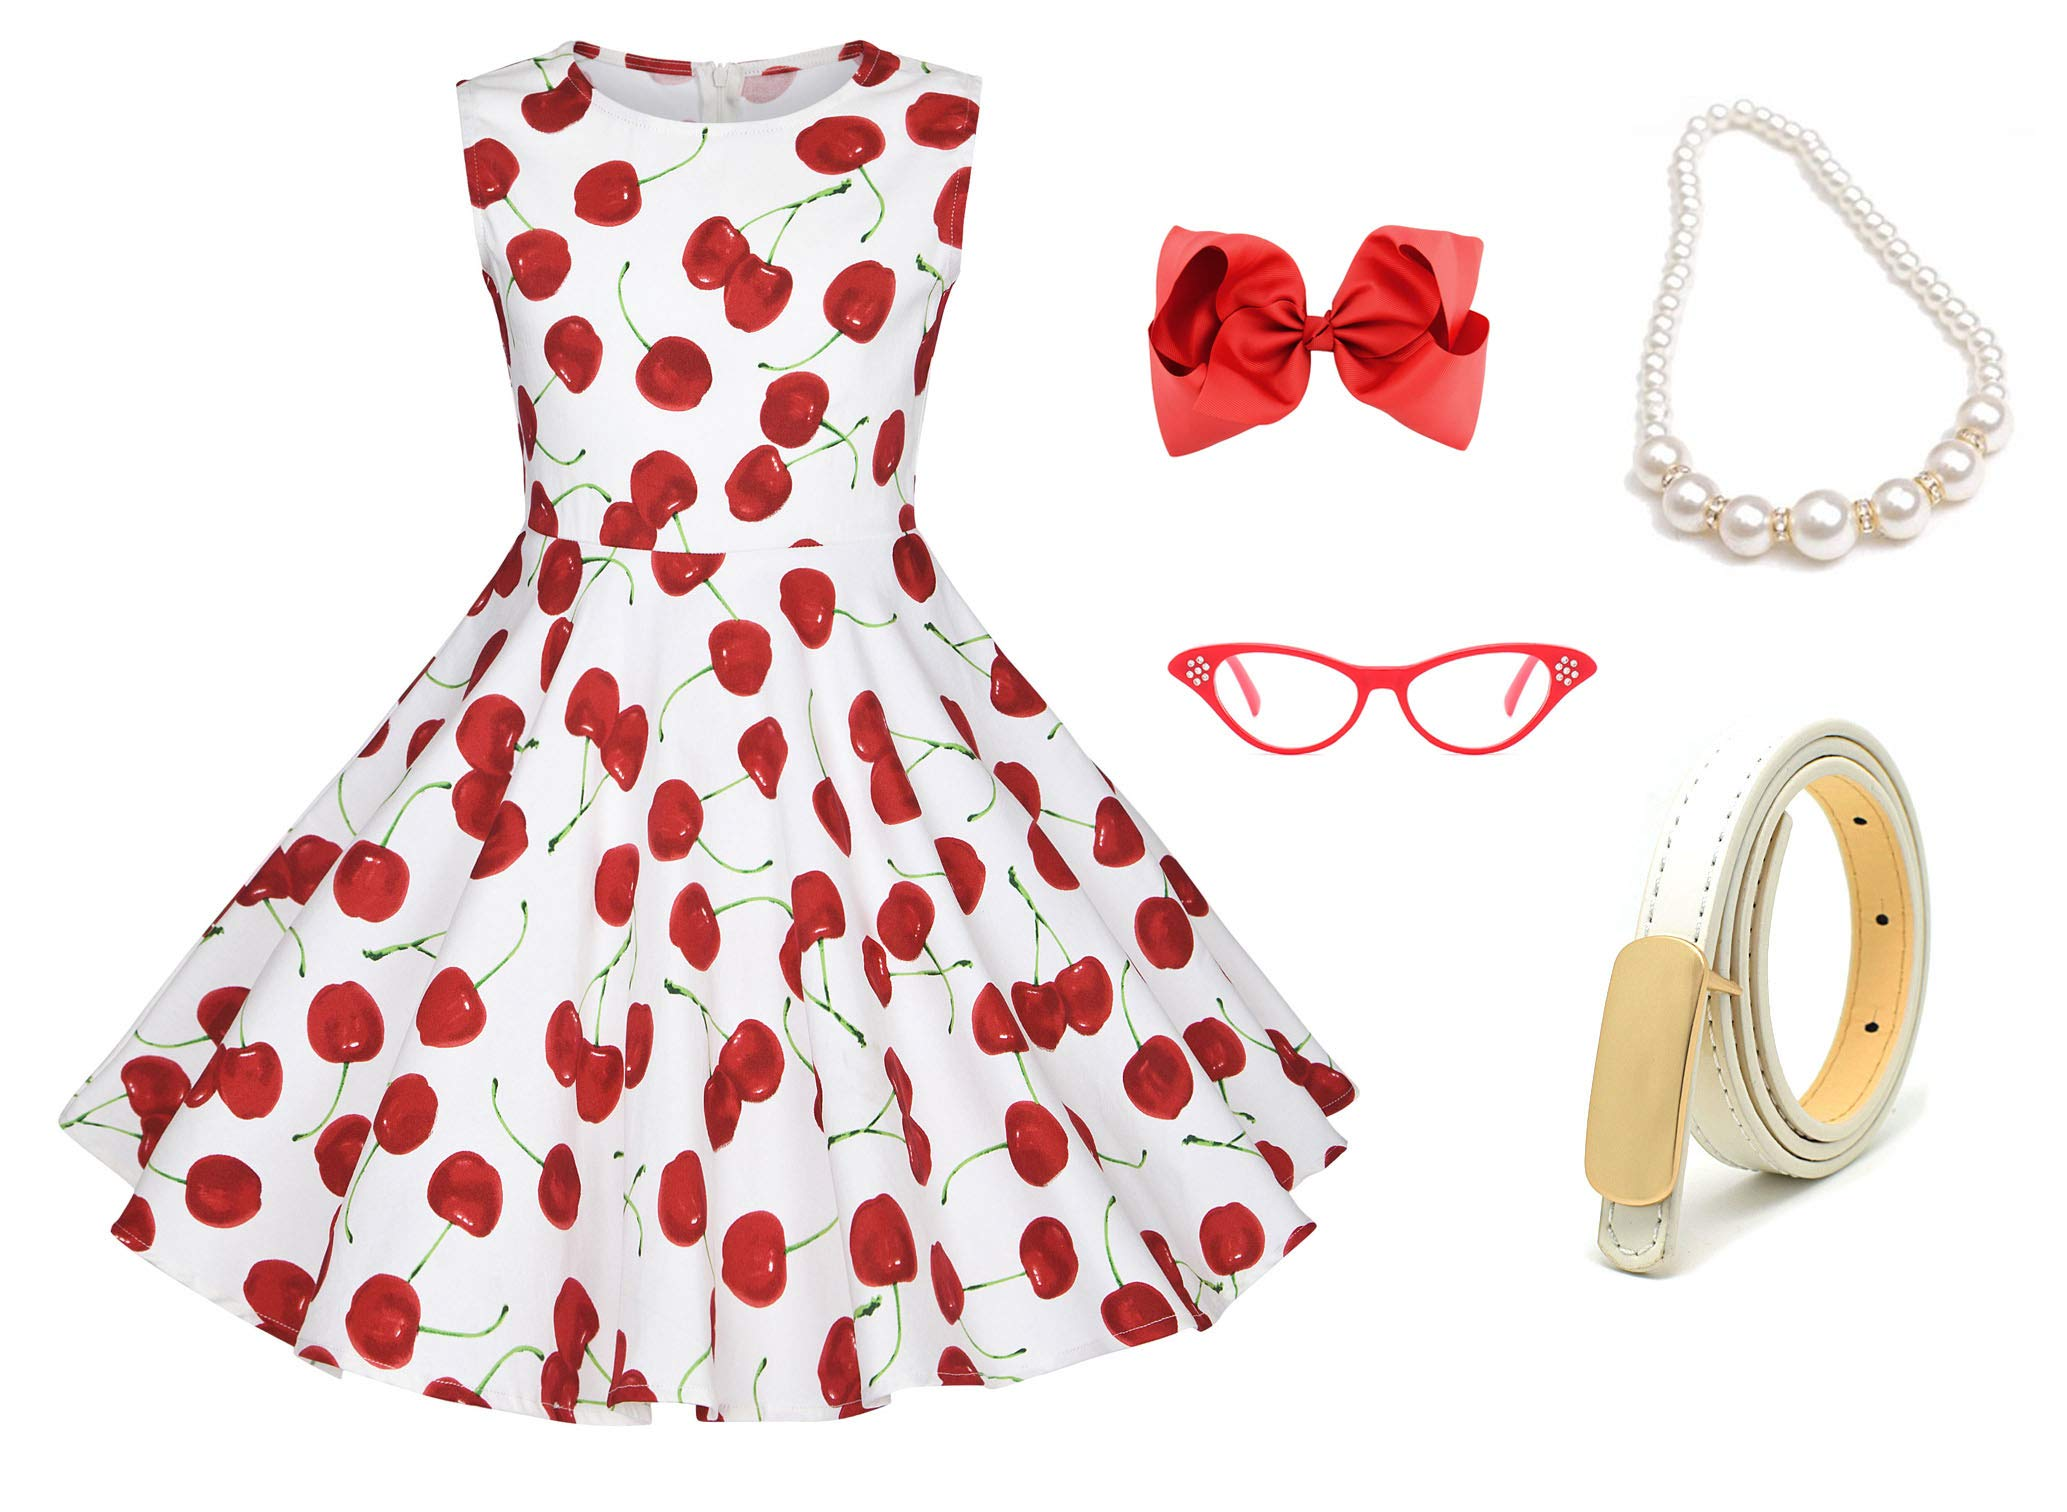 50s Girls Vintage Swing Dresses Casual Party Outfits Costume Dress Set with 50's Accessories Set of 5